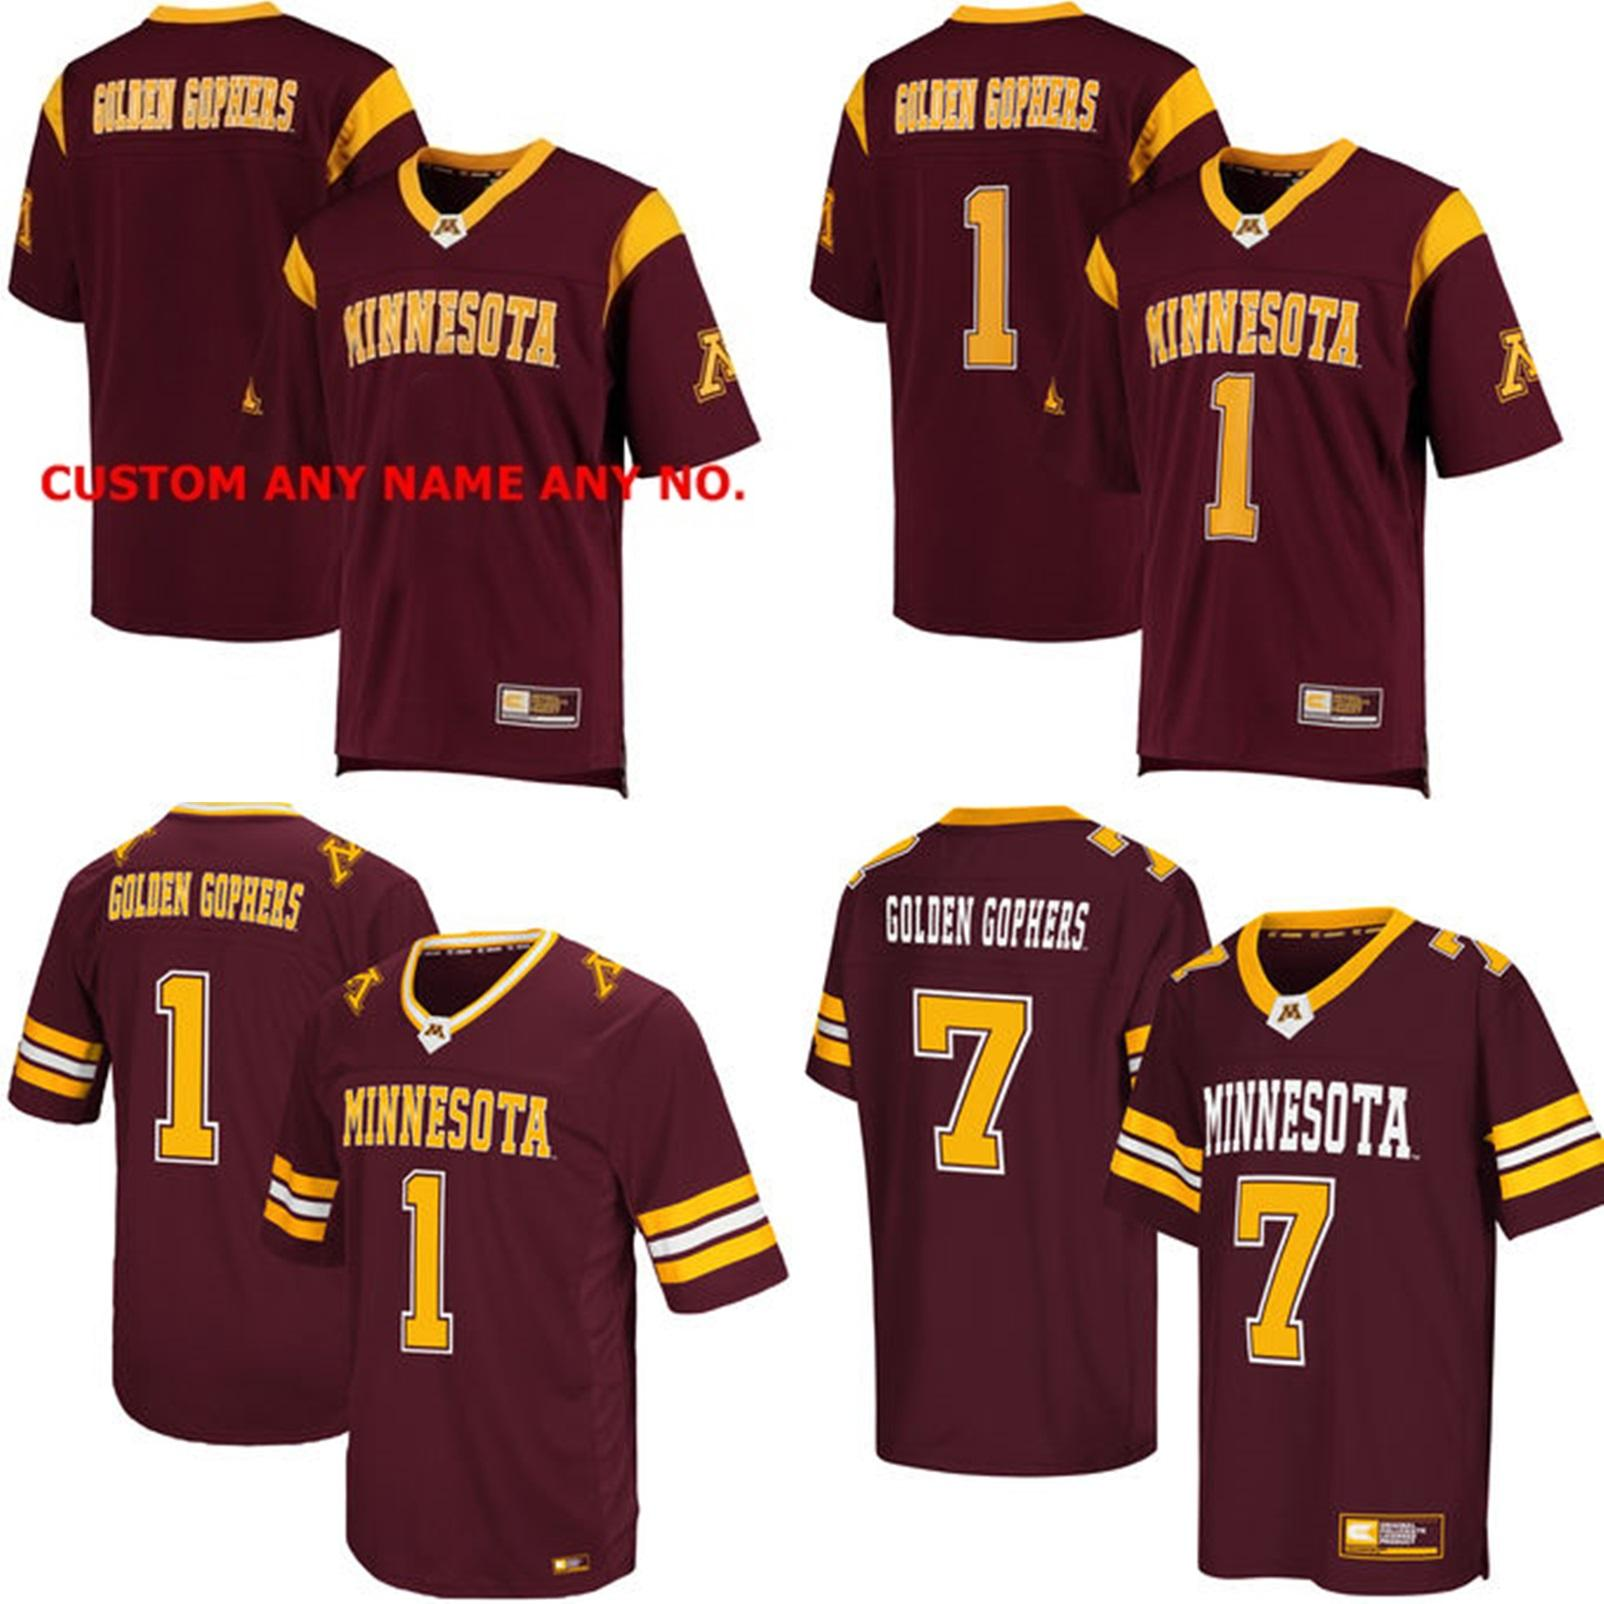 size 40 06797 49ea4 New NCAA Minnesota Golden Gophers Mens Womens Kids Best quality Jersey 100%  stitched Custom Any Name Any No. College Football Jerseys Maroon